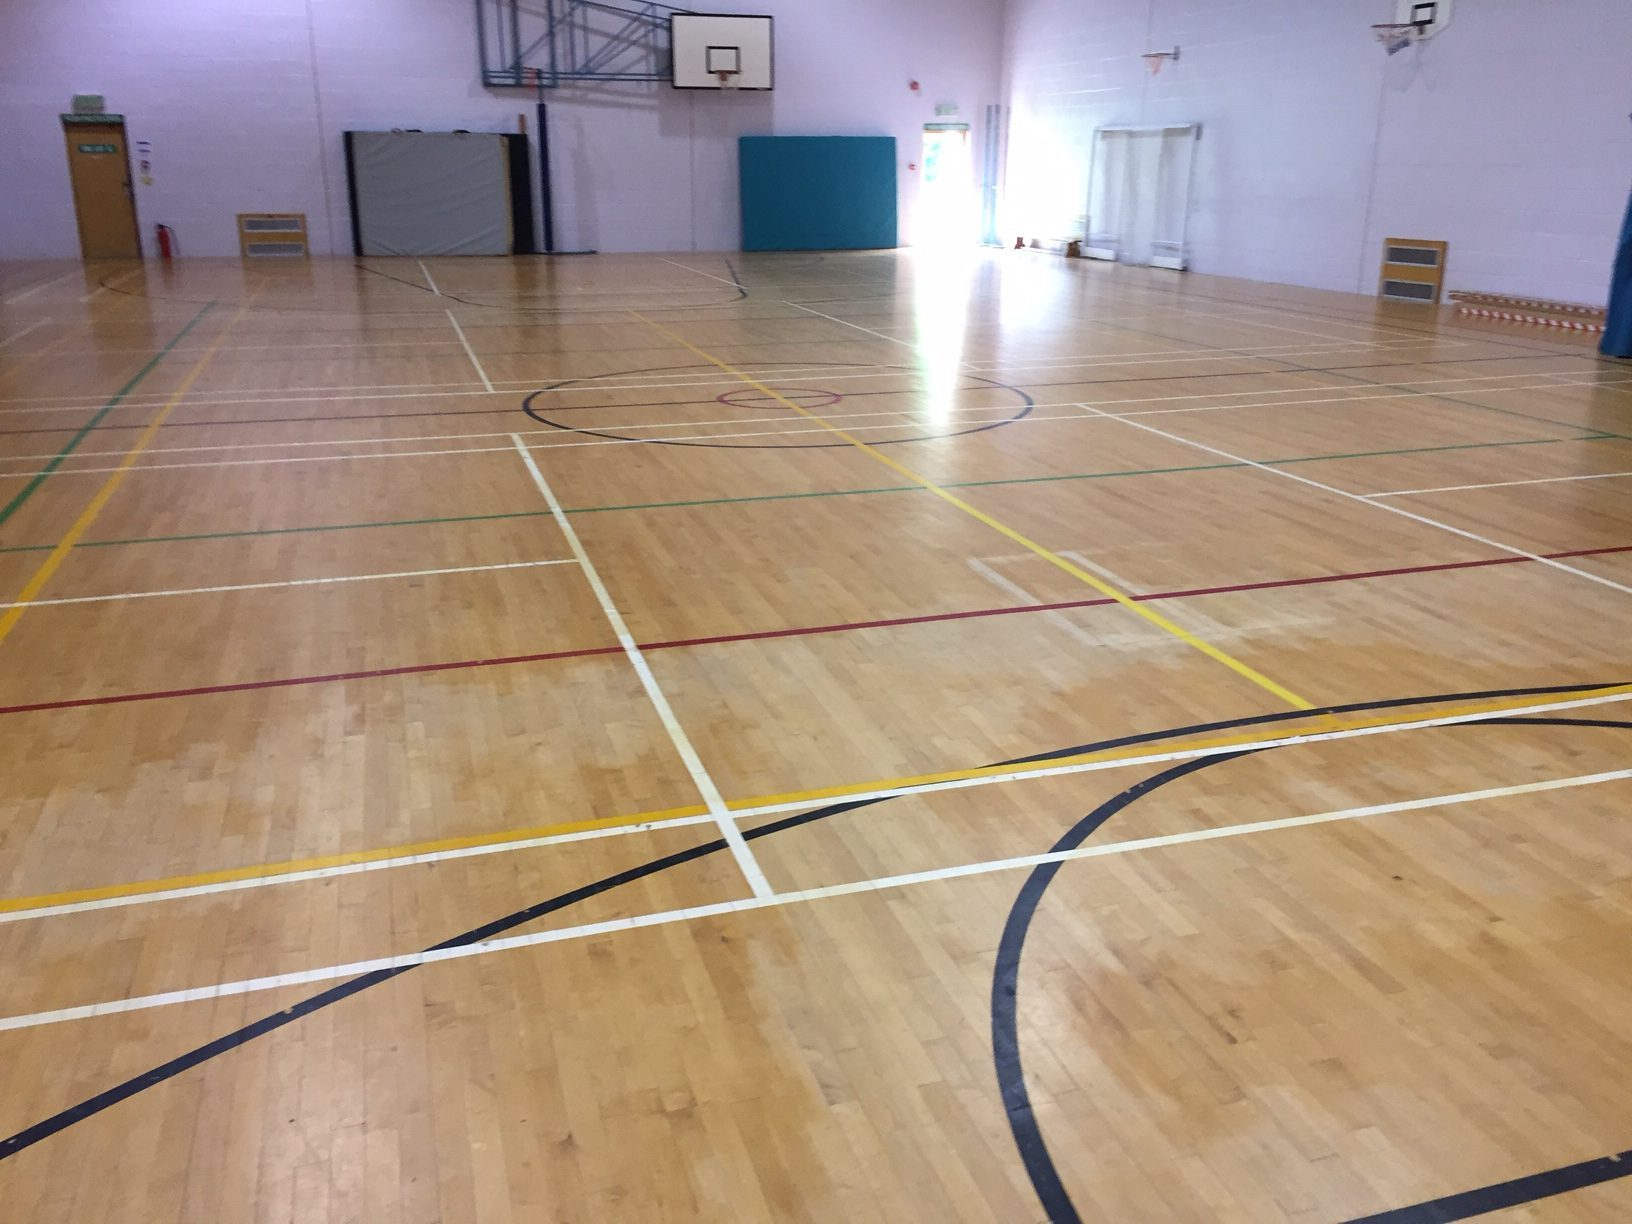 School sports hall floor installation by Sports Surfaces UK